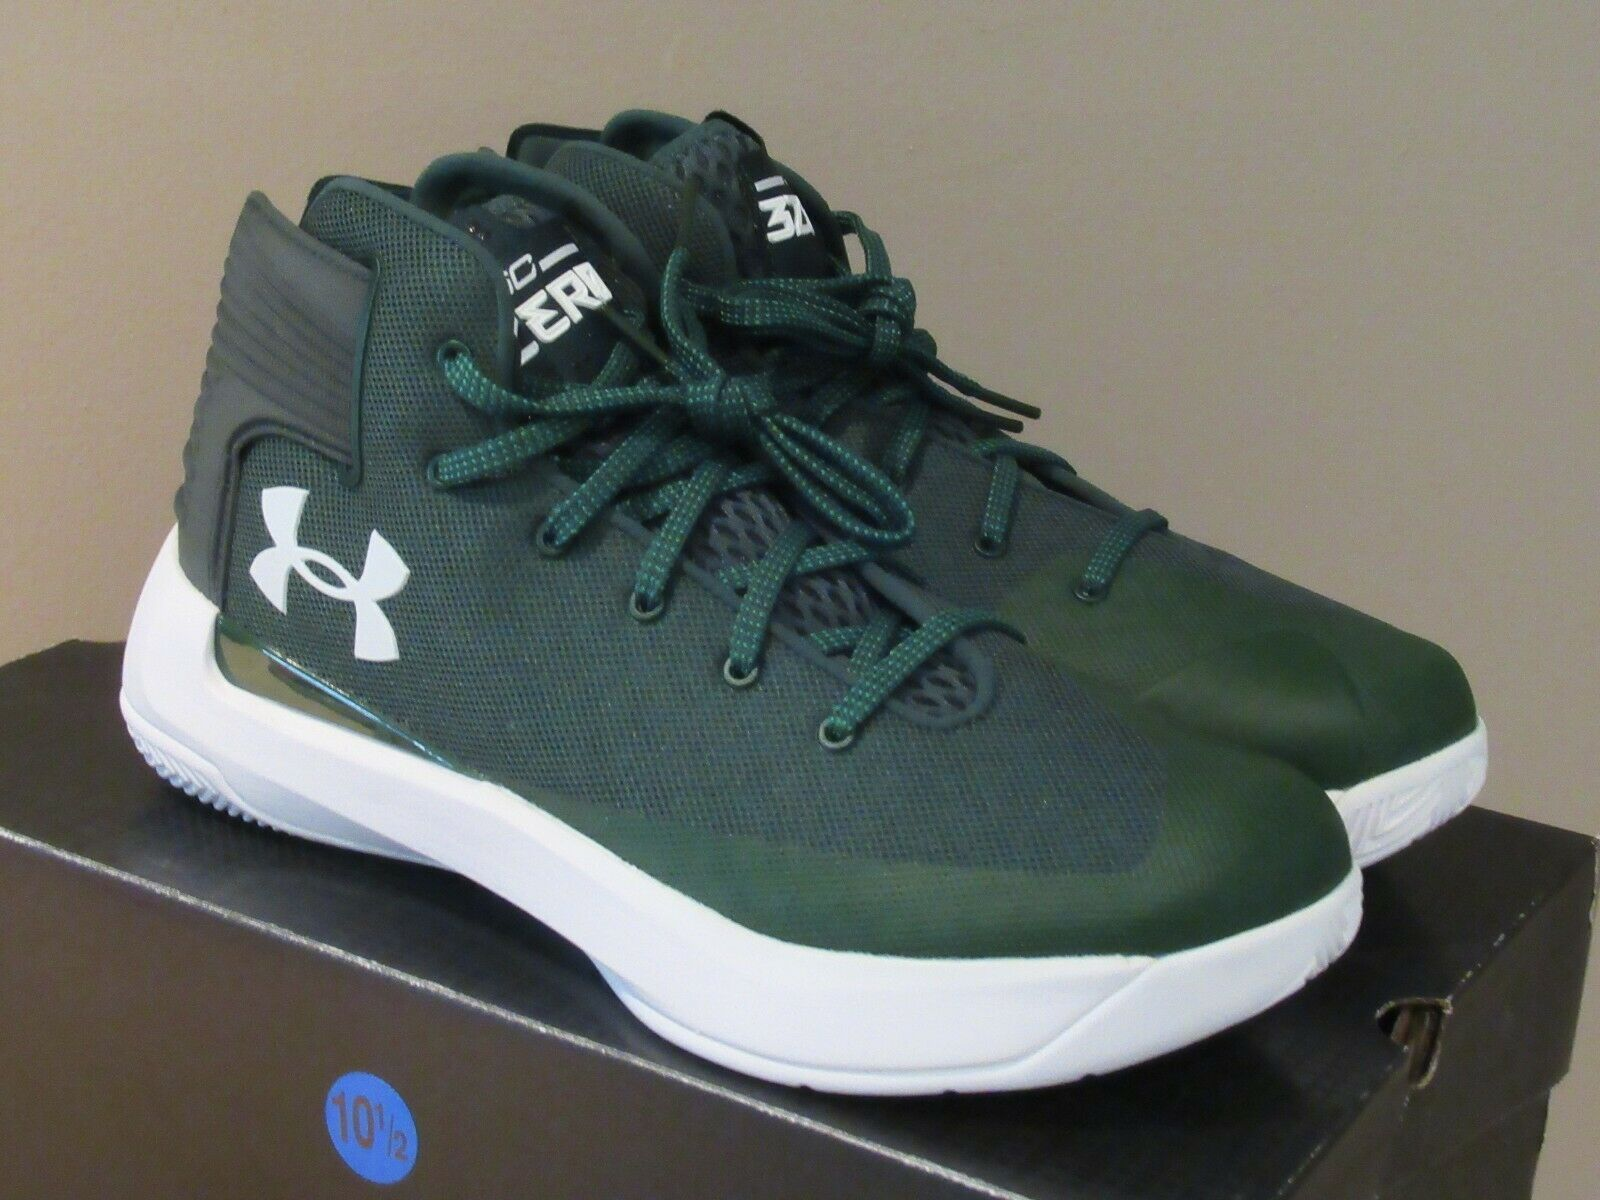 2c19b24b3481 Under Armour Stephen Curry Mens Low Top Basketball Sneakers Shoes Sz 10  Black in 2019